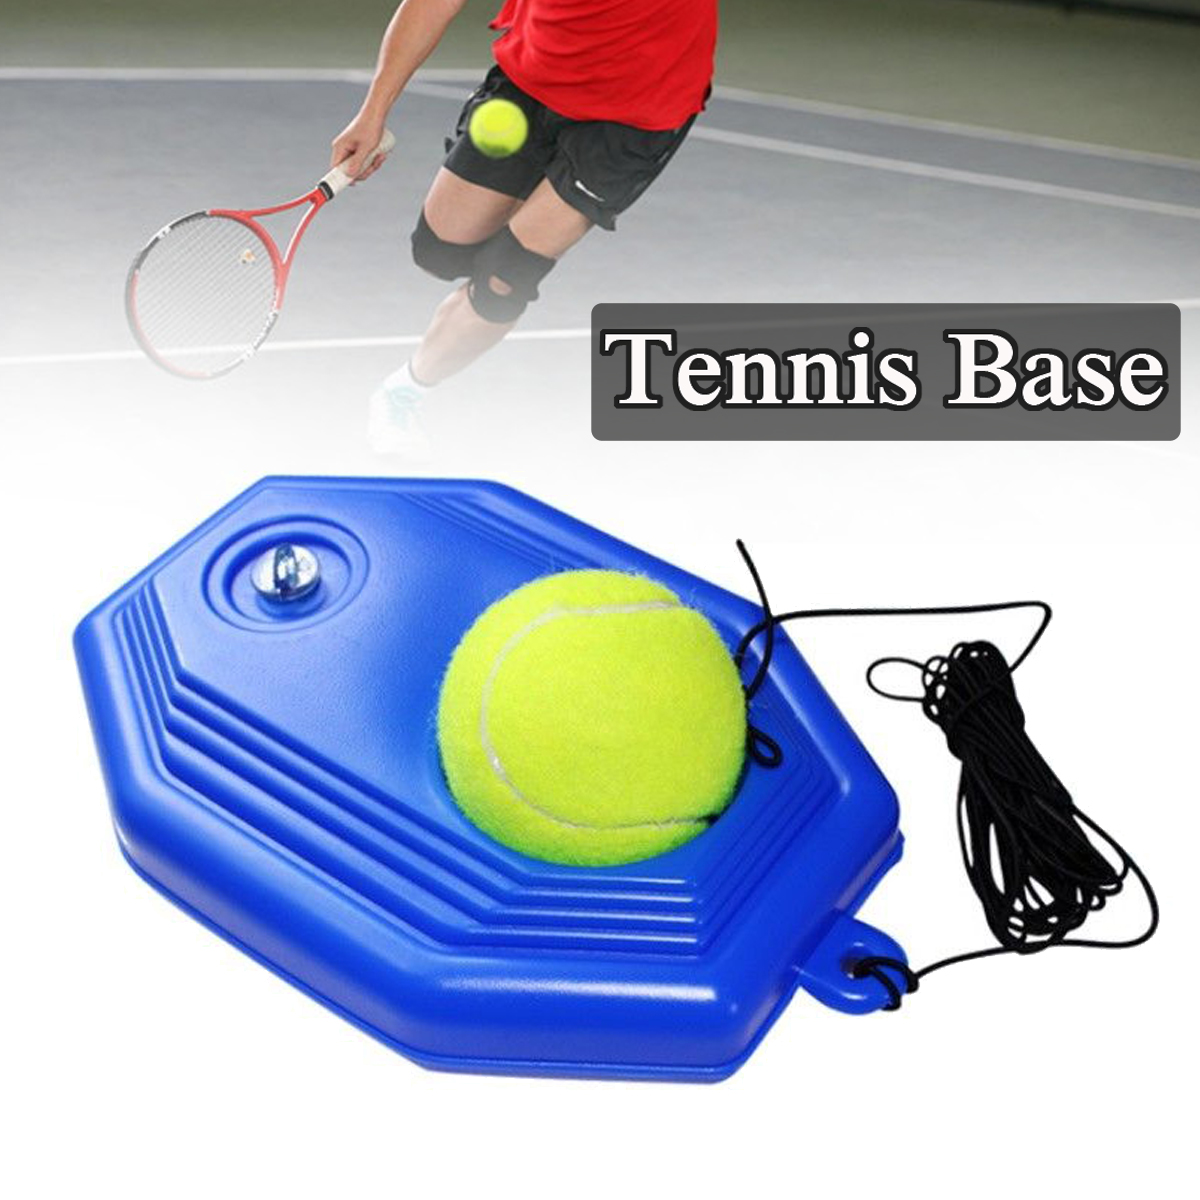 Tennis Training Base Tool Exercise Self-study Rebound Ball Baseboard Set